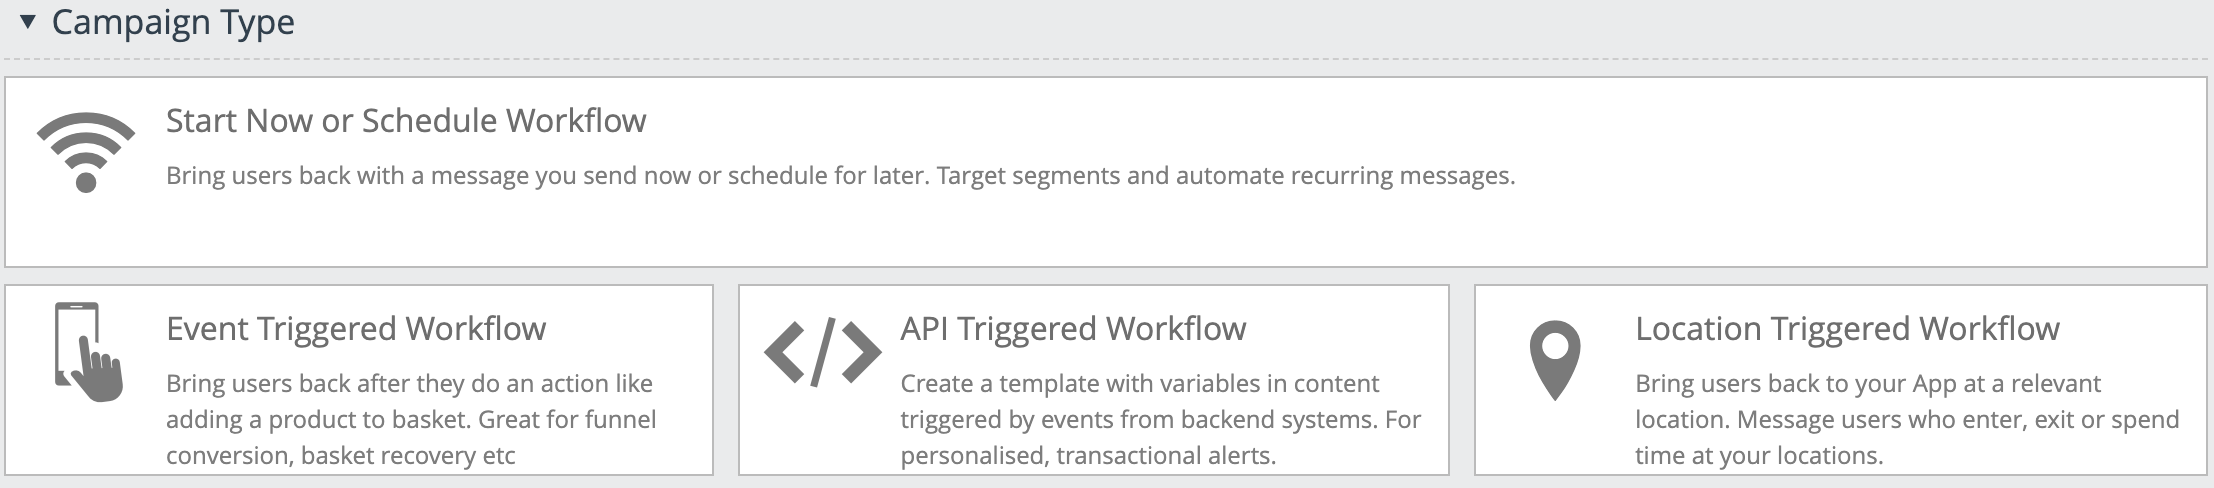 Triggers available for multi stage journeys: Start now to create a scheduled workflow, event triggered, API triggered and location triggered workflows.